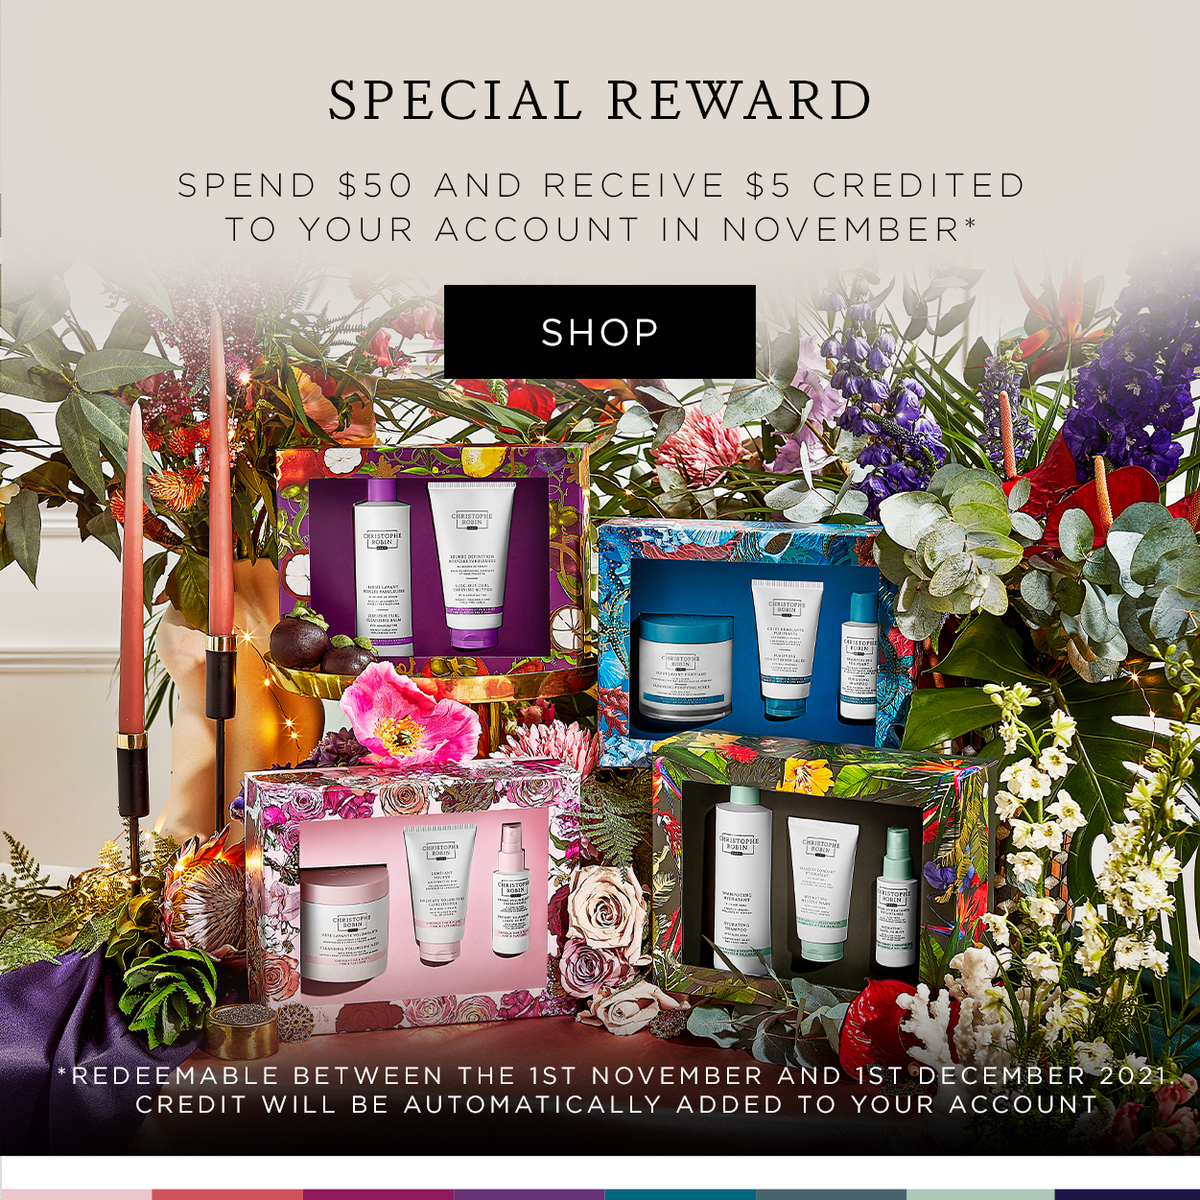 Spend £50 and receive £5 credit.